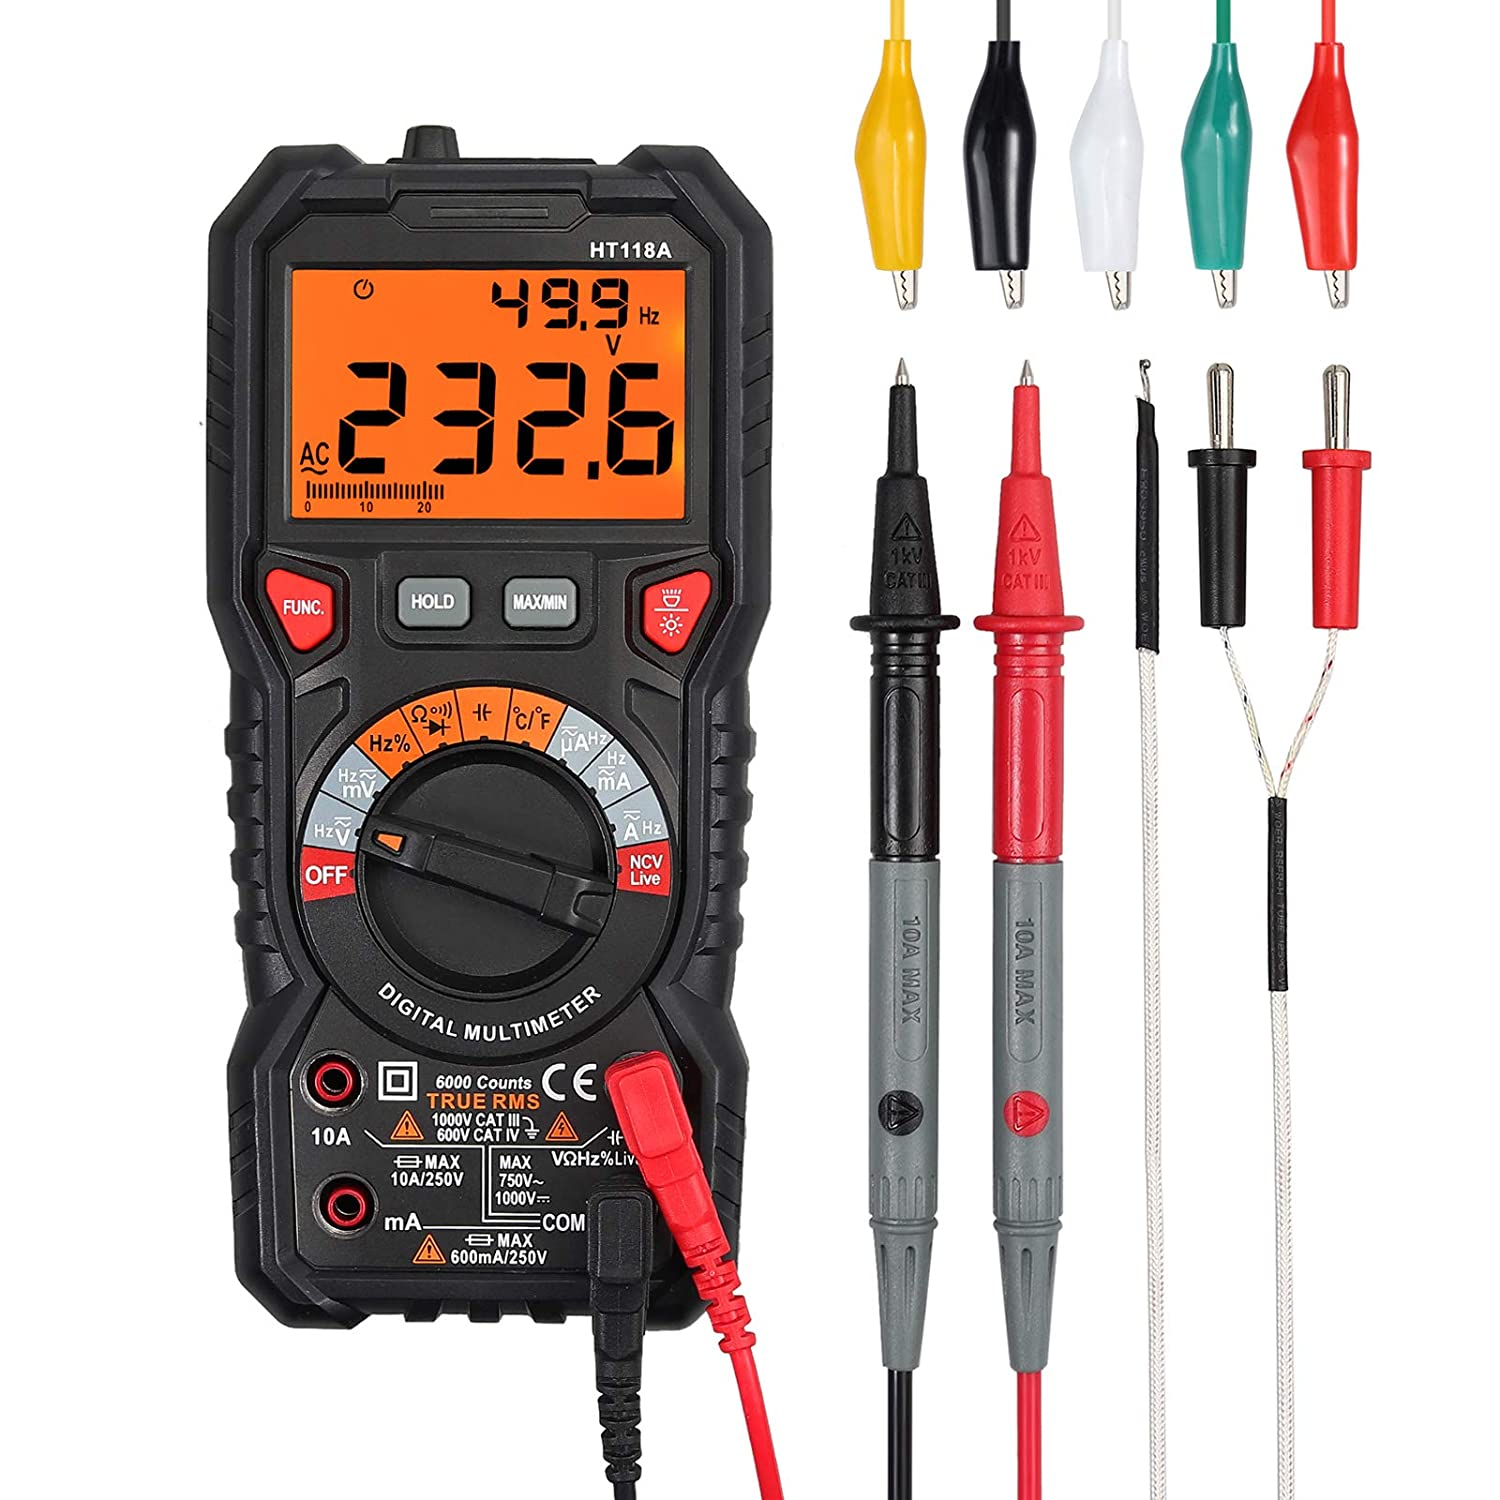 CAMWAY Digital Multimeter Max 60% OFF gift 6000Count Auto-Ranging TRMS